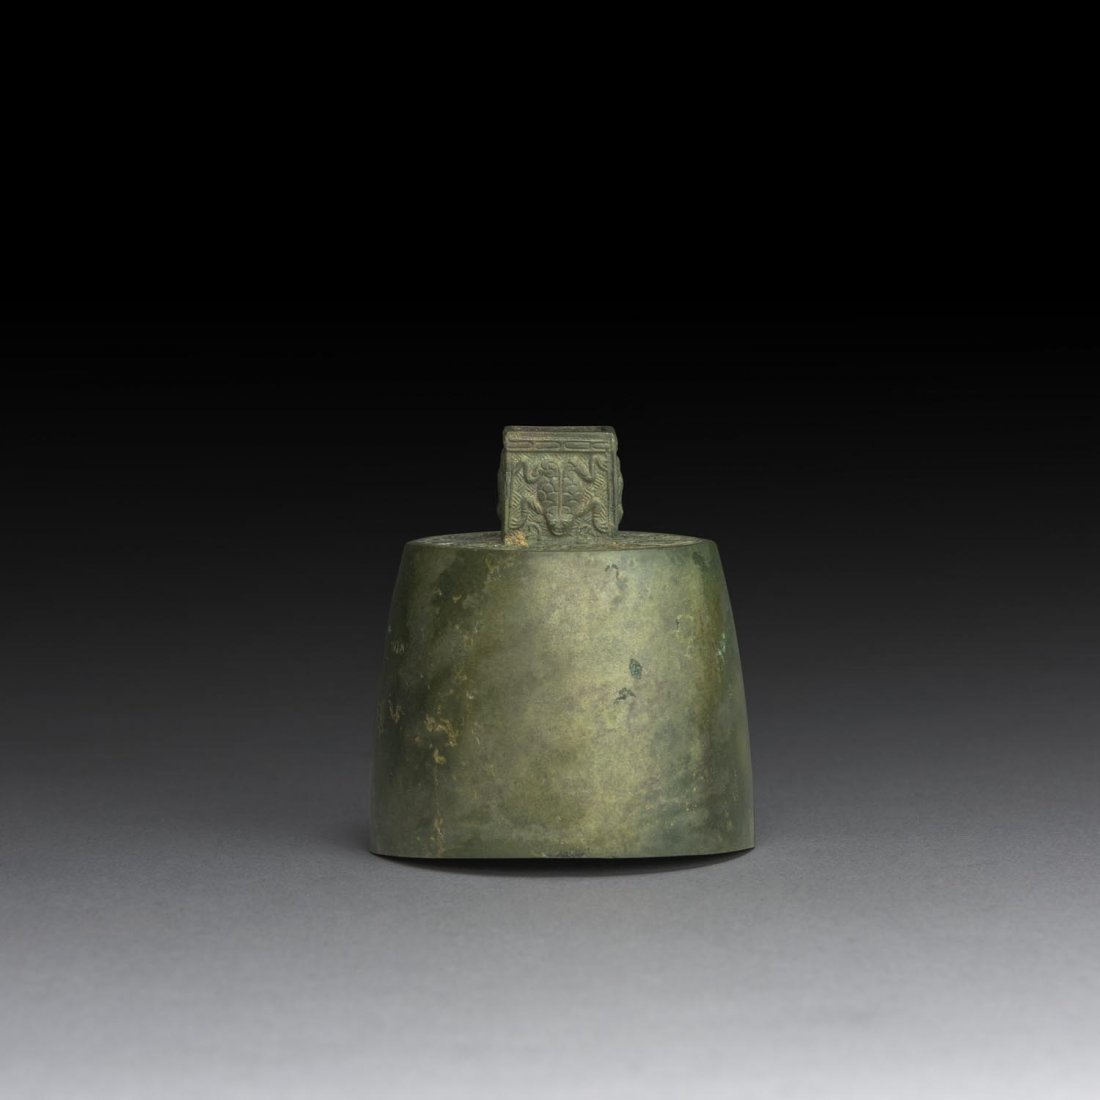 A VERY RARE ARCHAIC TINY BRONZE BELL, PROBABLY SPRING